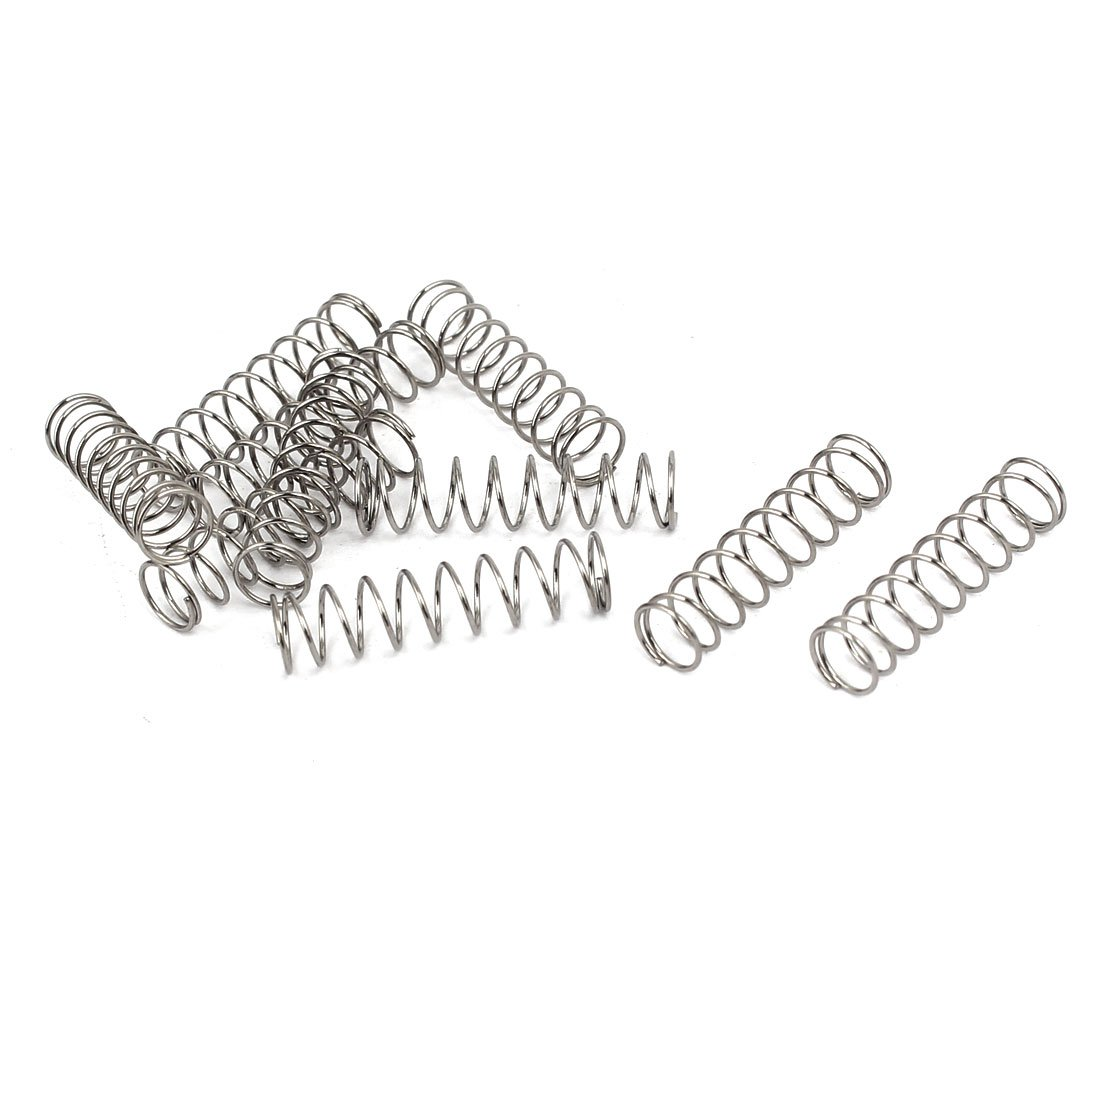 uxcell Compression Spring 304 Stainless All items in Selling and selling the store OD 5mm Wire 0.4mm Steel